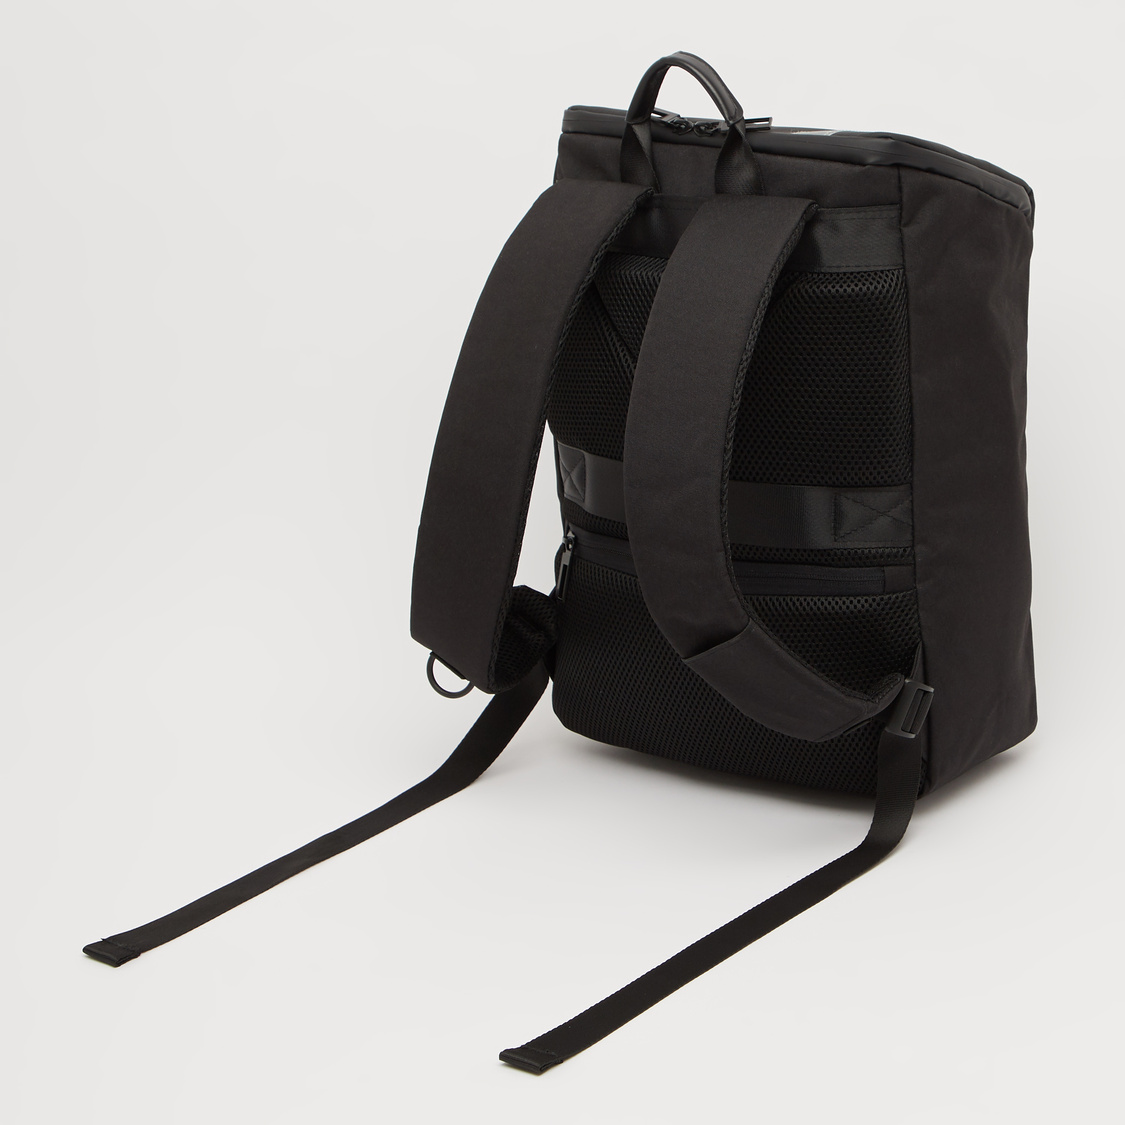 Solid Backpack with Adjustable Shoulder Straps and USB Port - 16 Inches